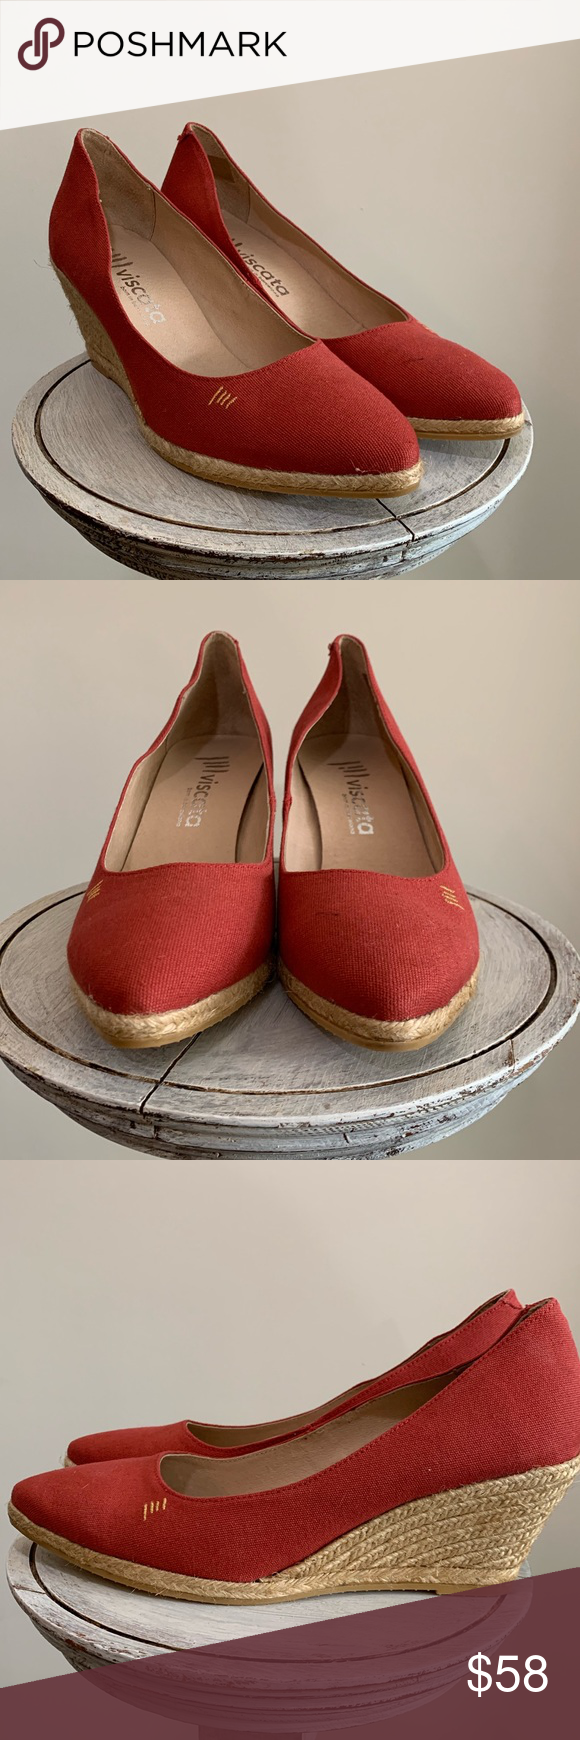 c65a35e3bca Viscata Barcelona Espadrille Canvas Wedges Red 11 EUC Viscata born ...